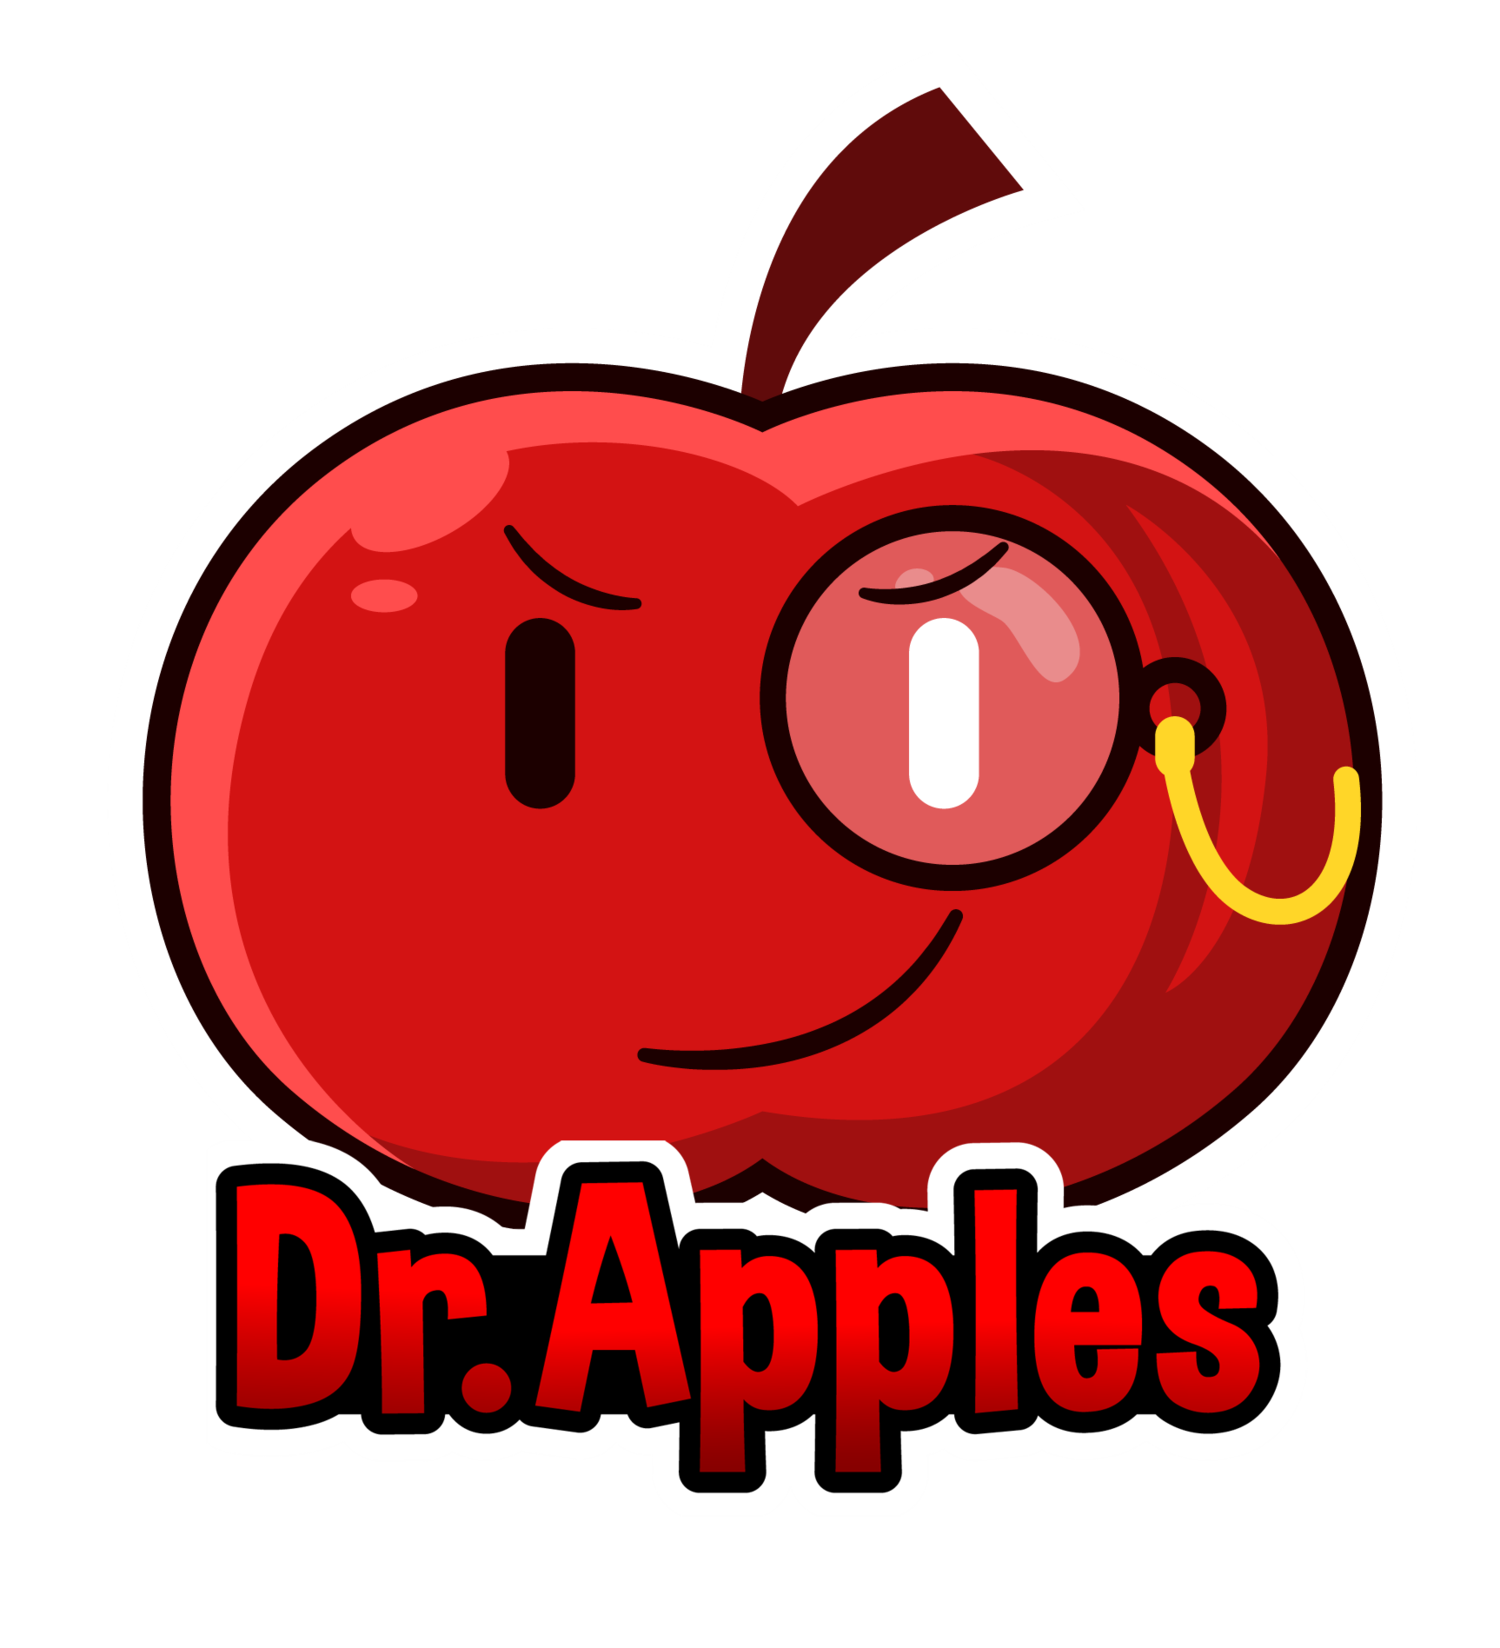 Dr. Apples